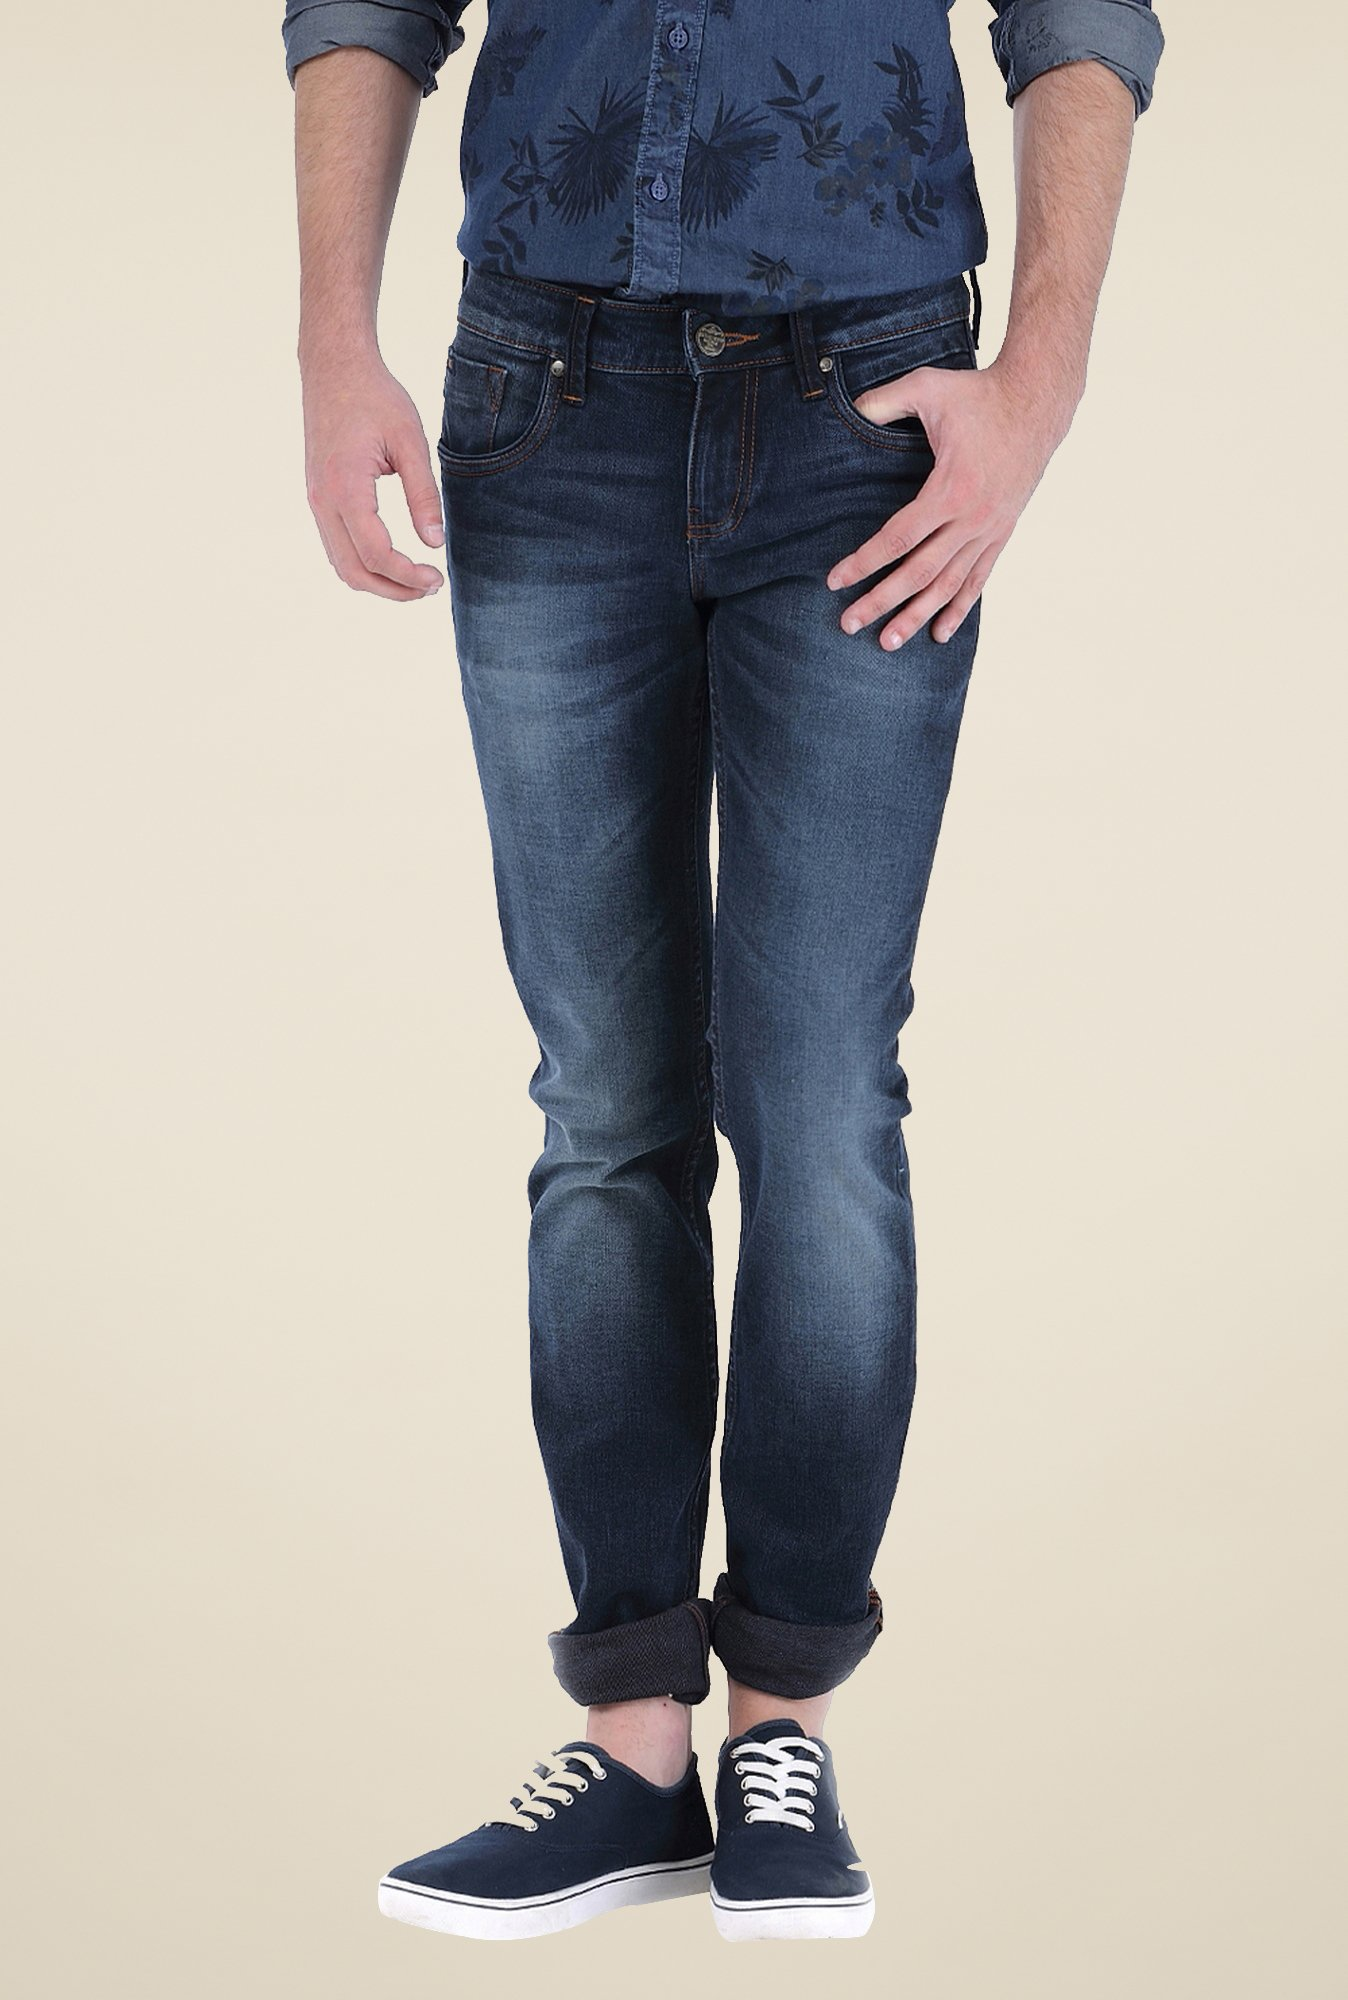 Basics Navy Skinny Fit Jeans